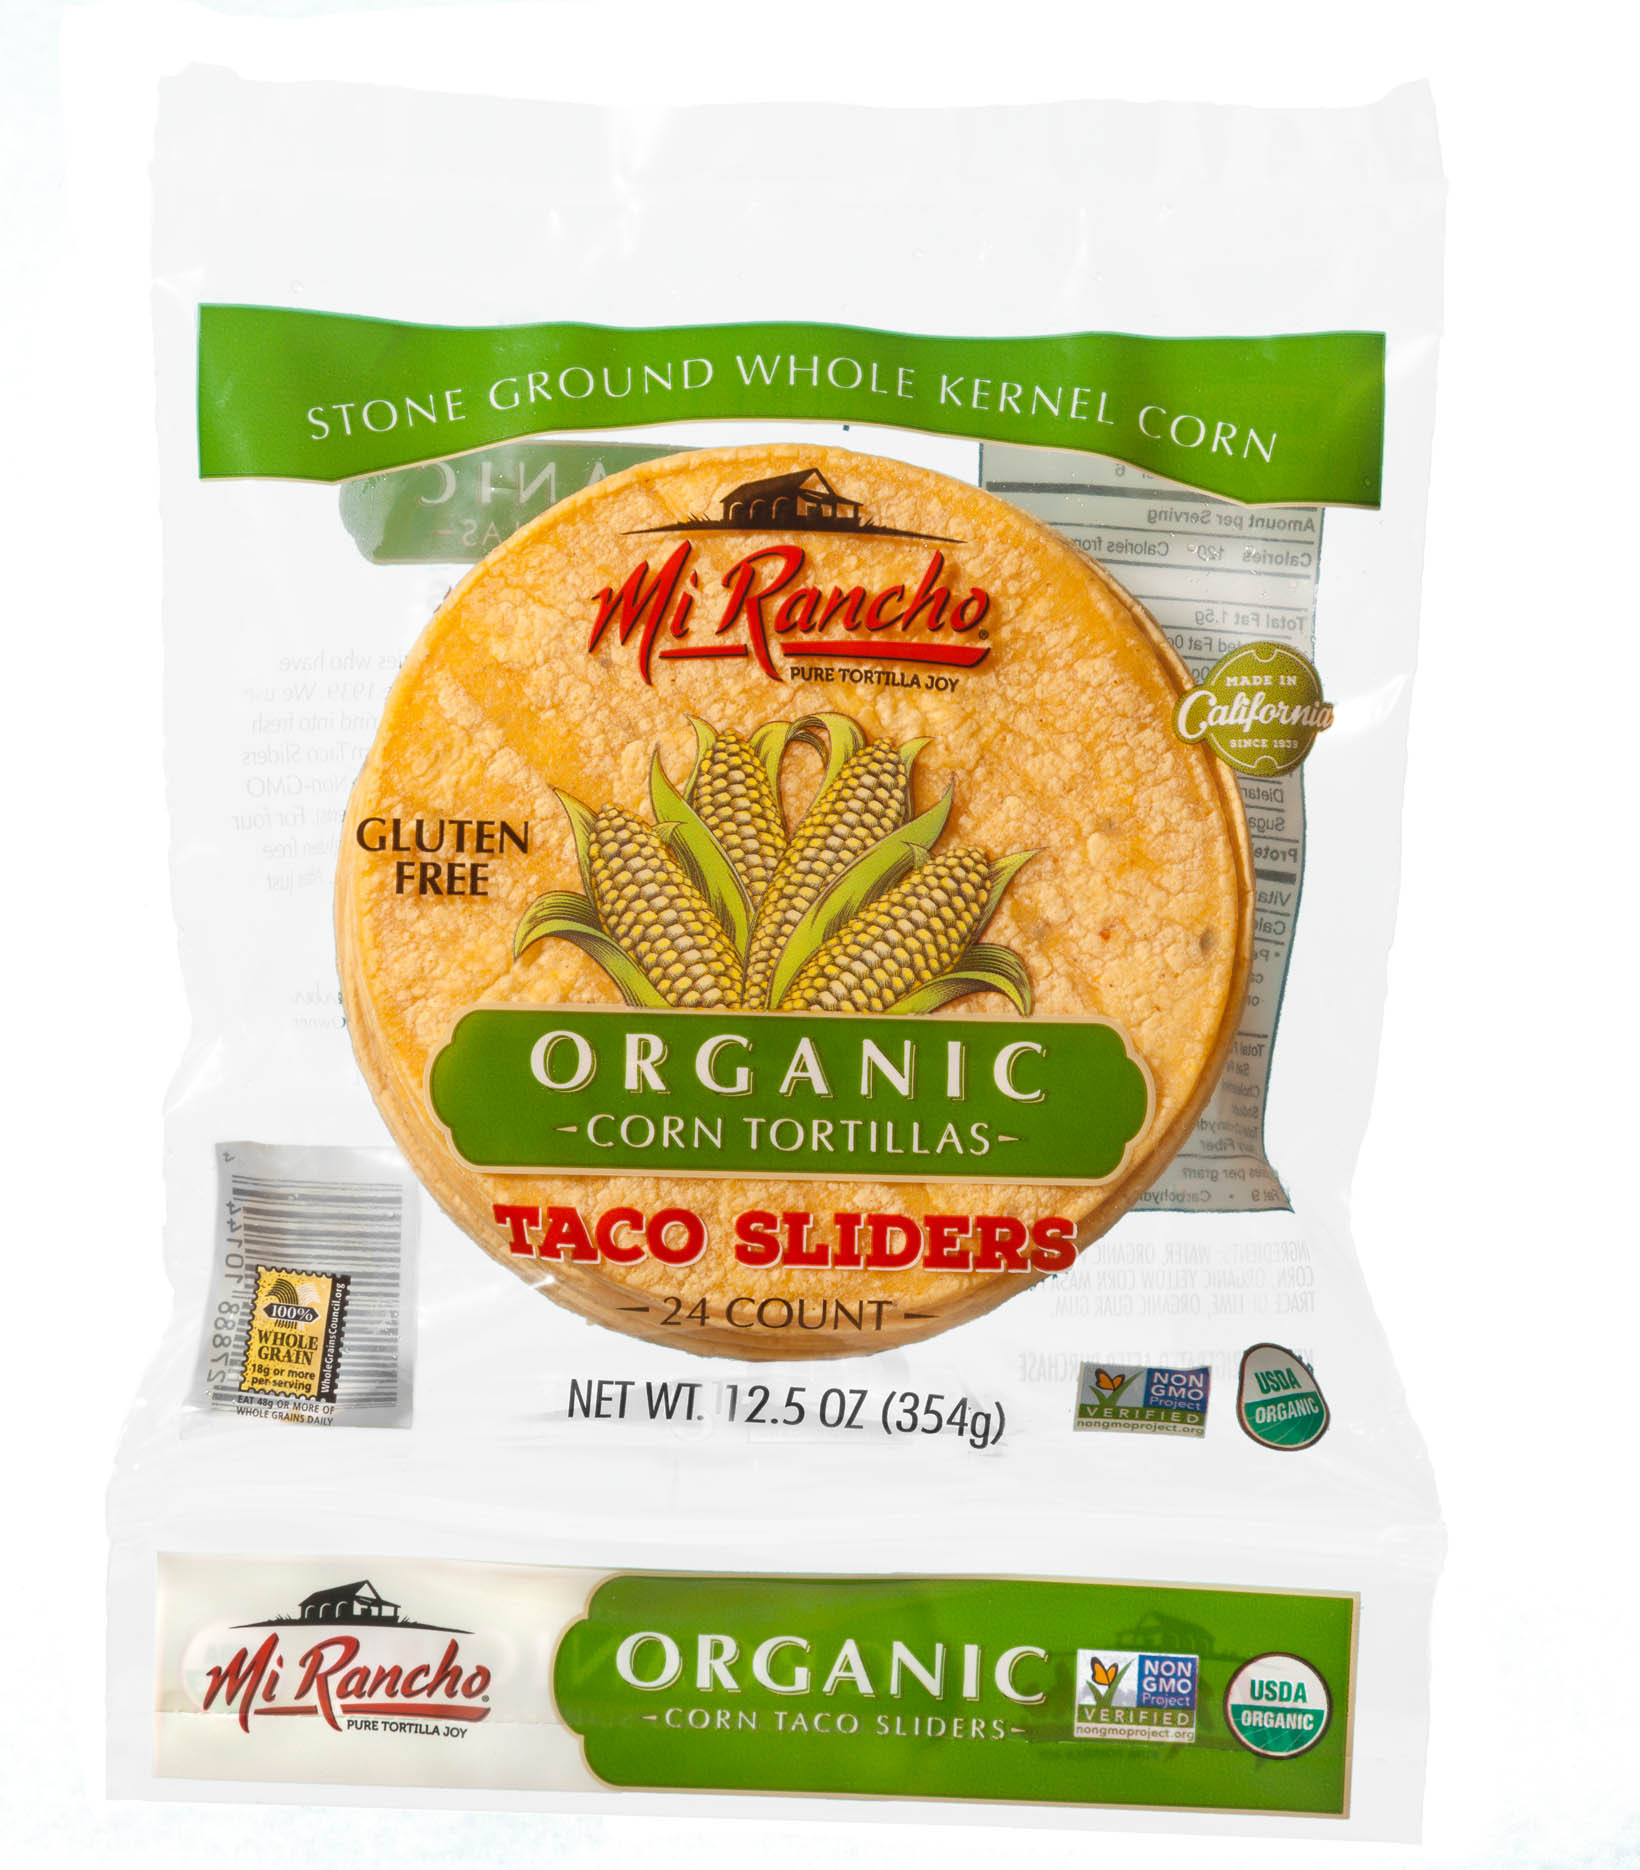 Organic Corn Tortillas  Discovering Pure Tortilla Joy with Mi Rancho Organic Corn